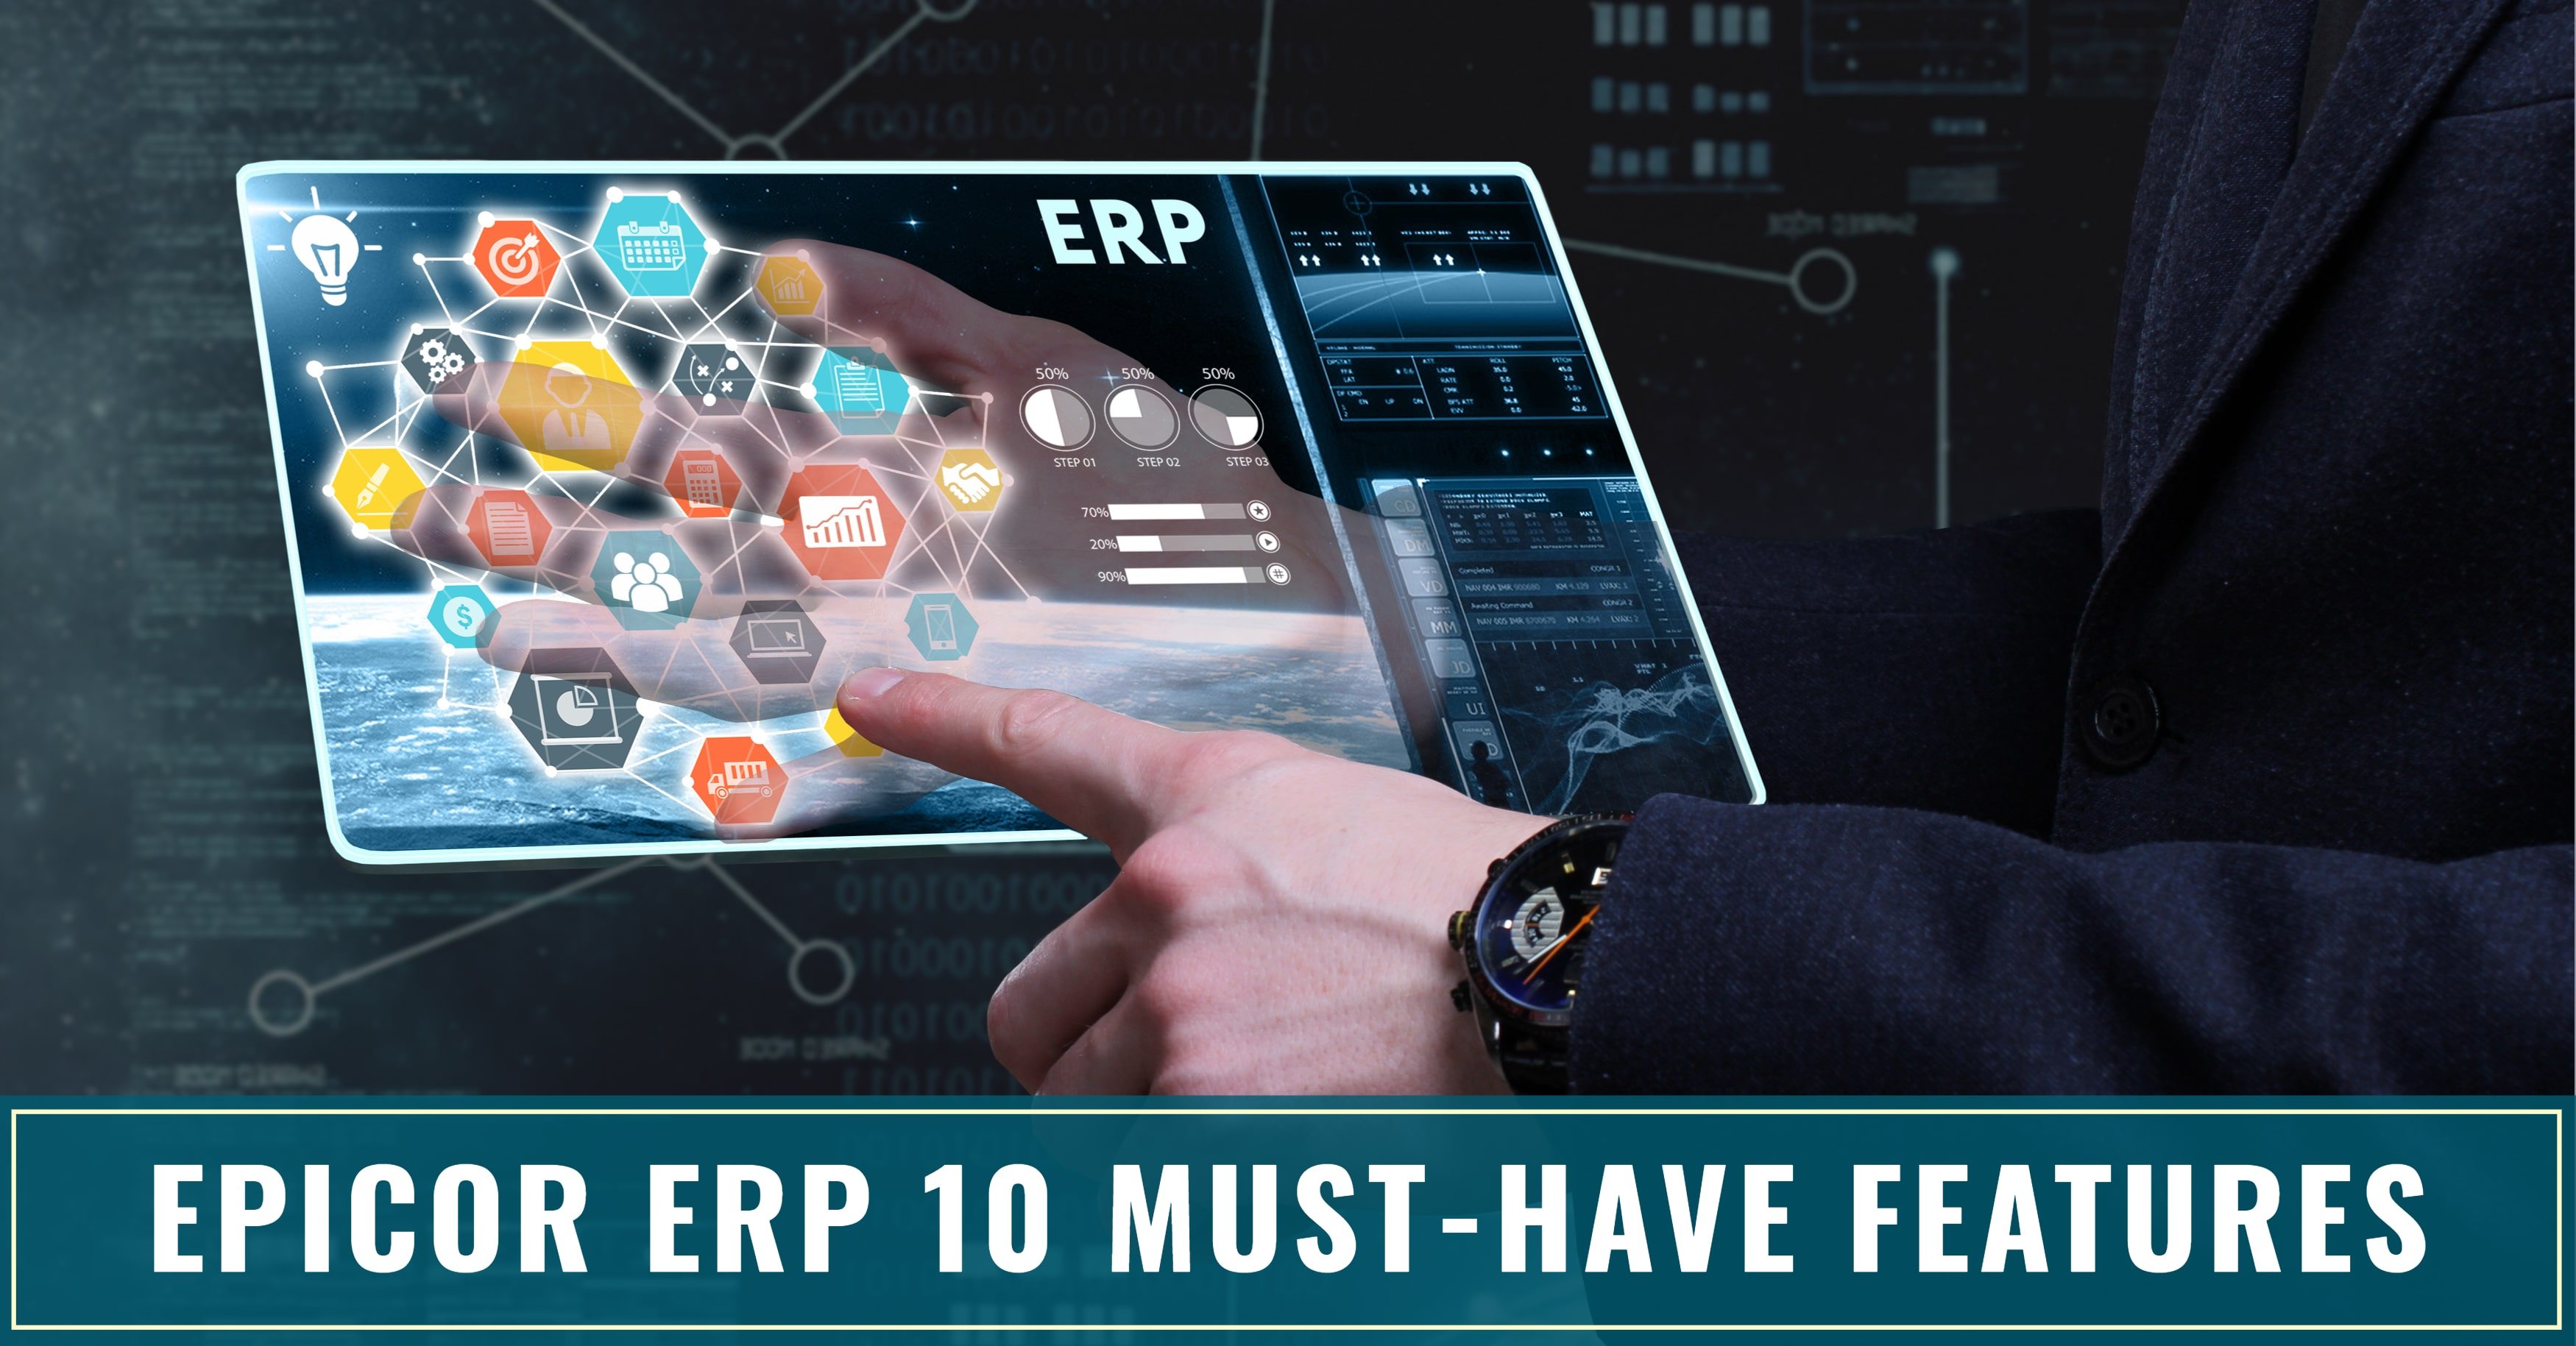 Epicor ERP 10 Must-Have Features